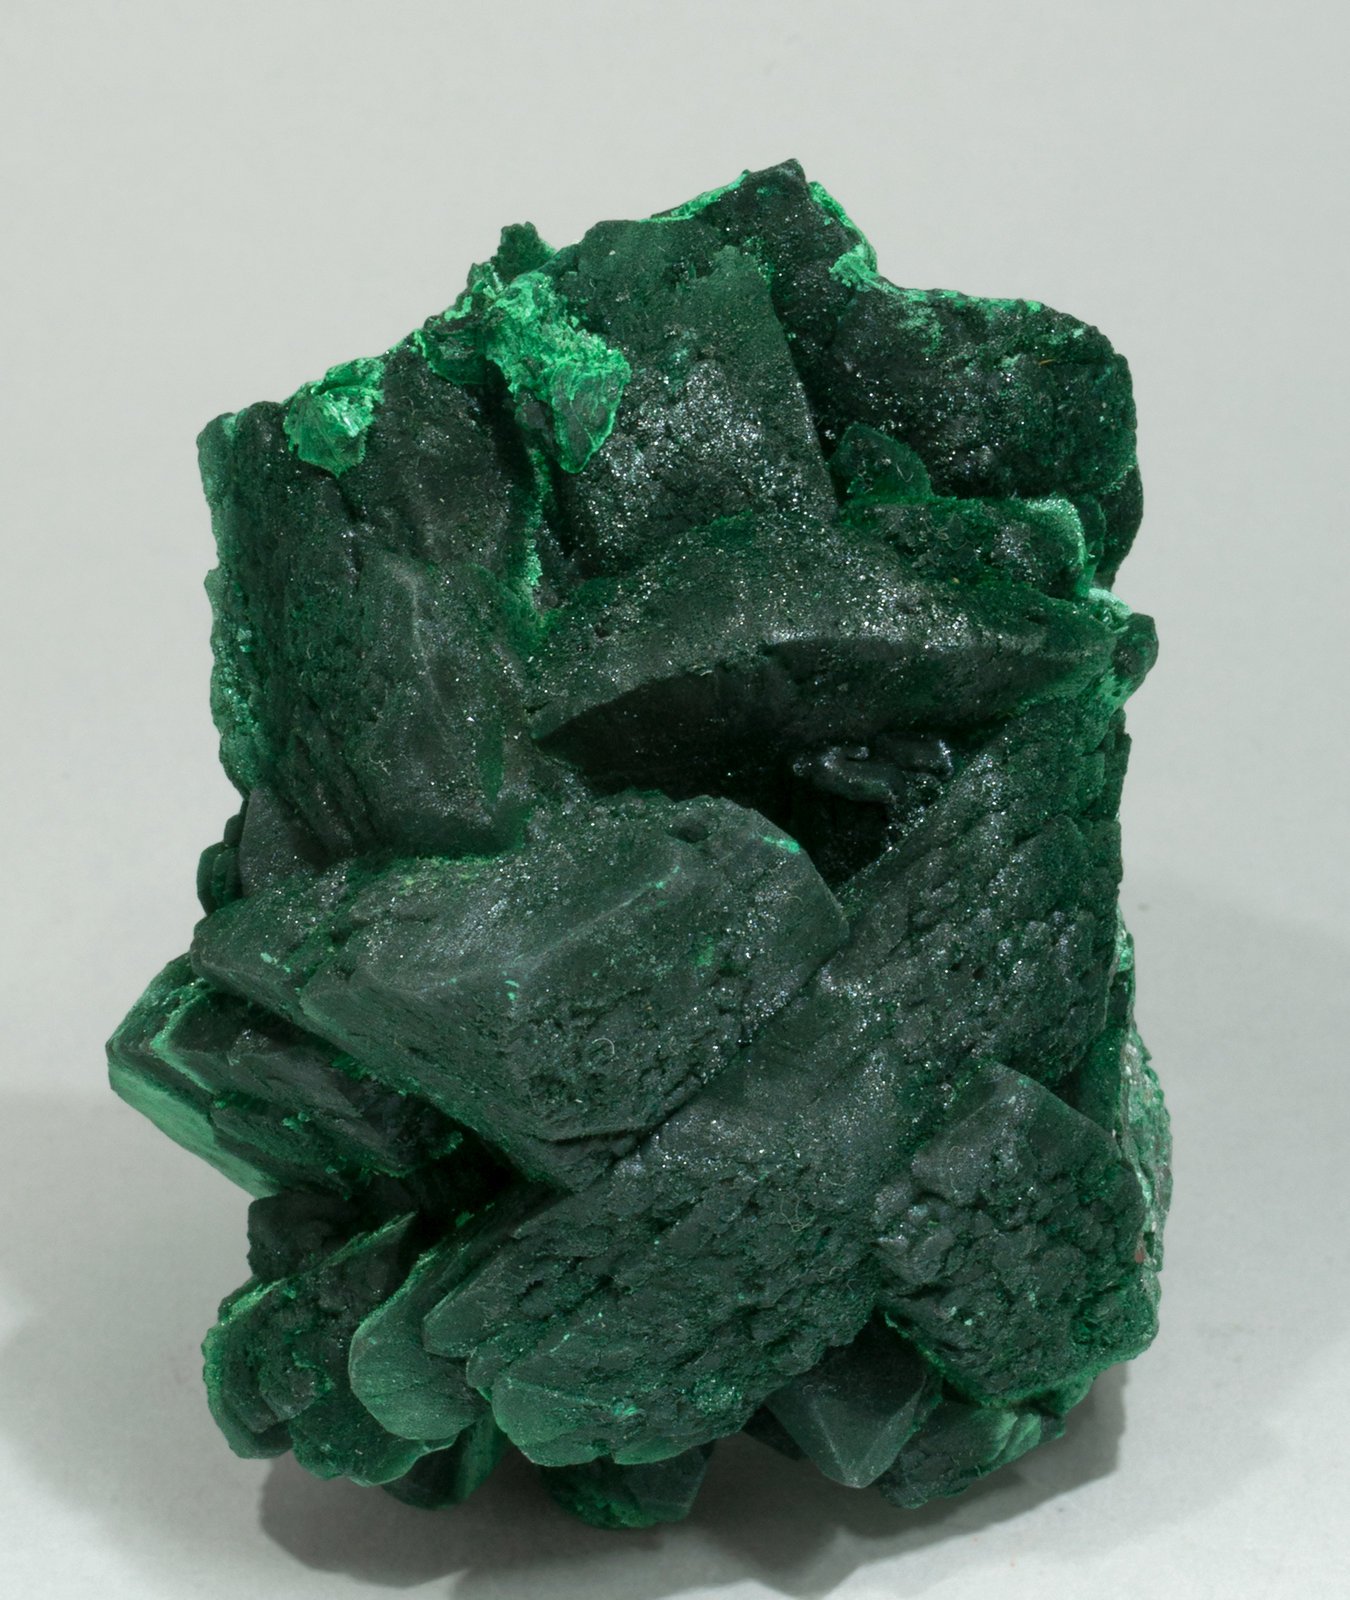 specimens/s_imagesZ0/Malachite-TF49Z0f.jpg